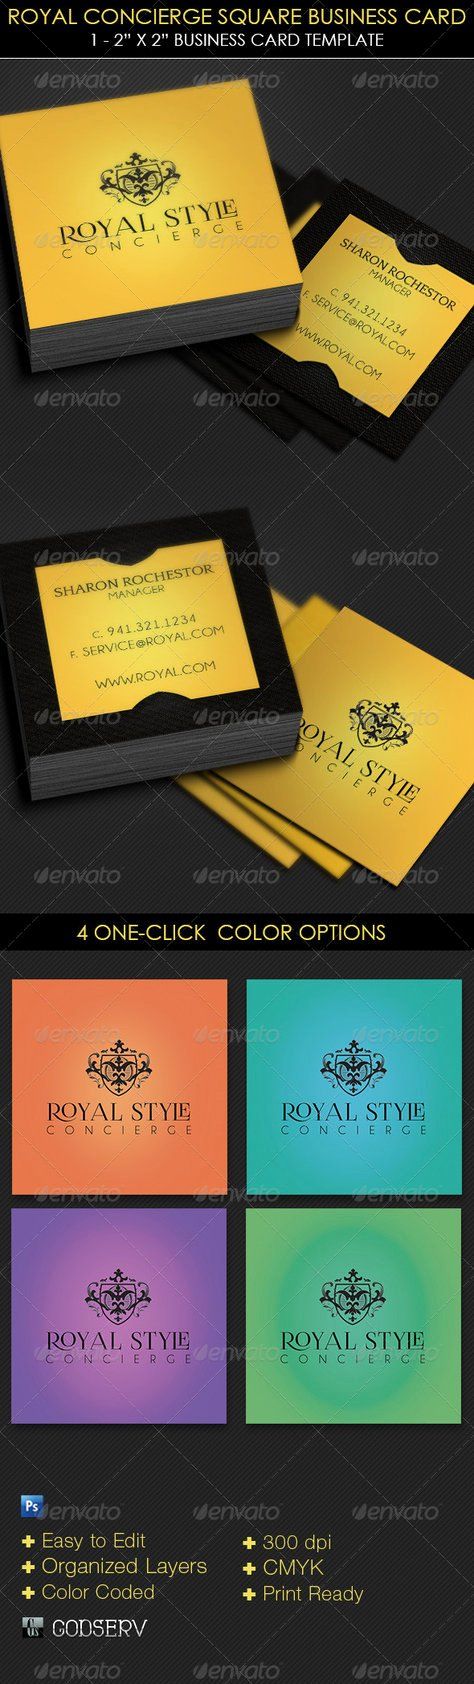 Square Business Card Template Free Inspirational Royal Concierge Square Business Card Template by Godserv